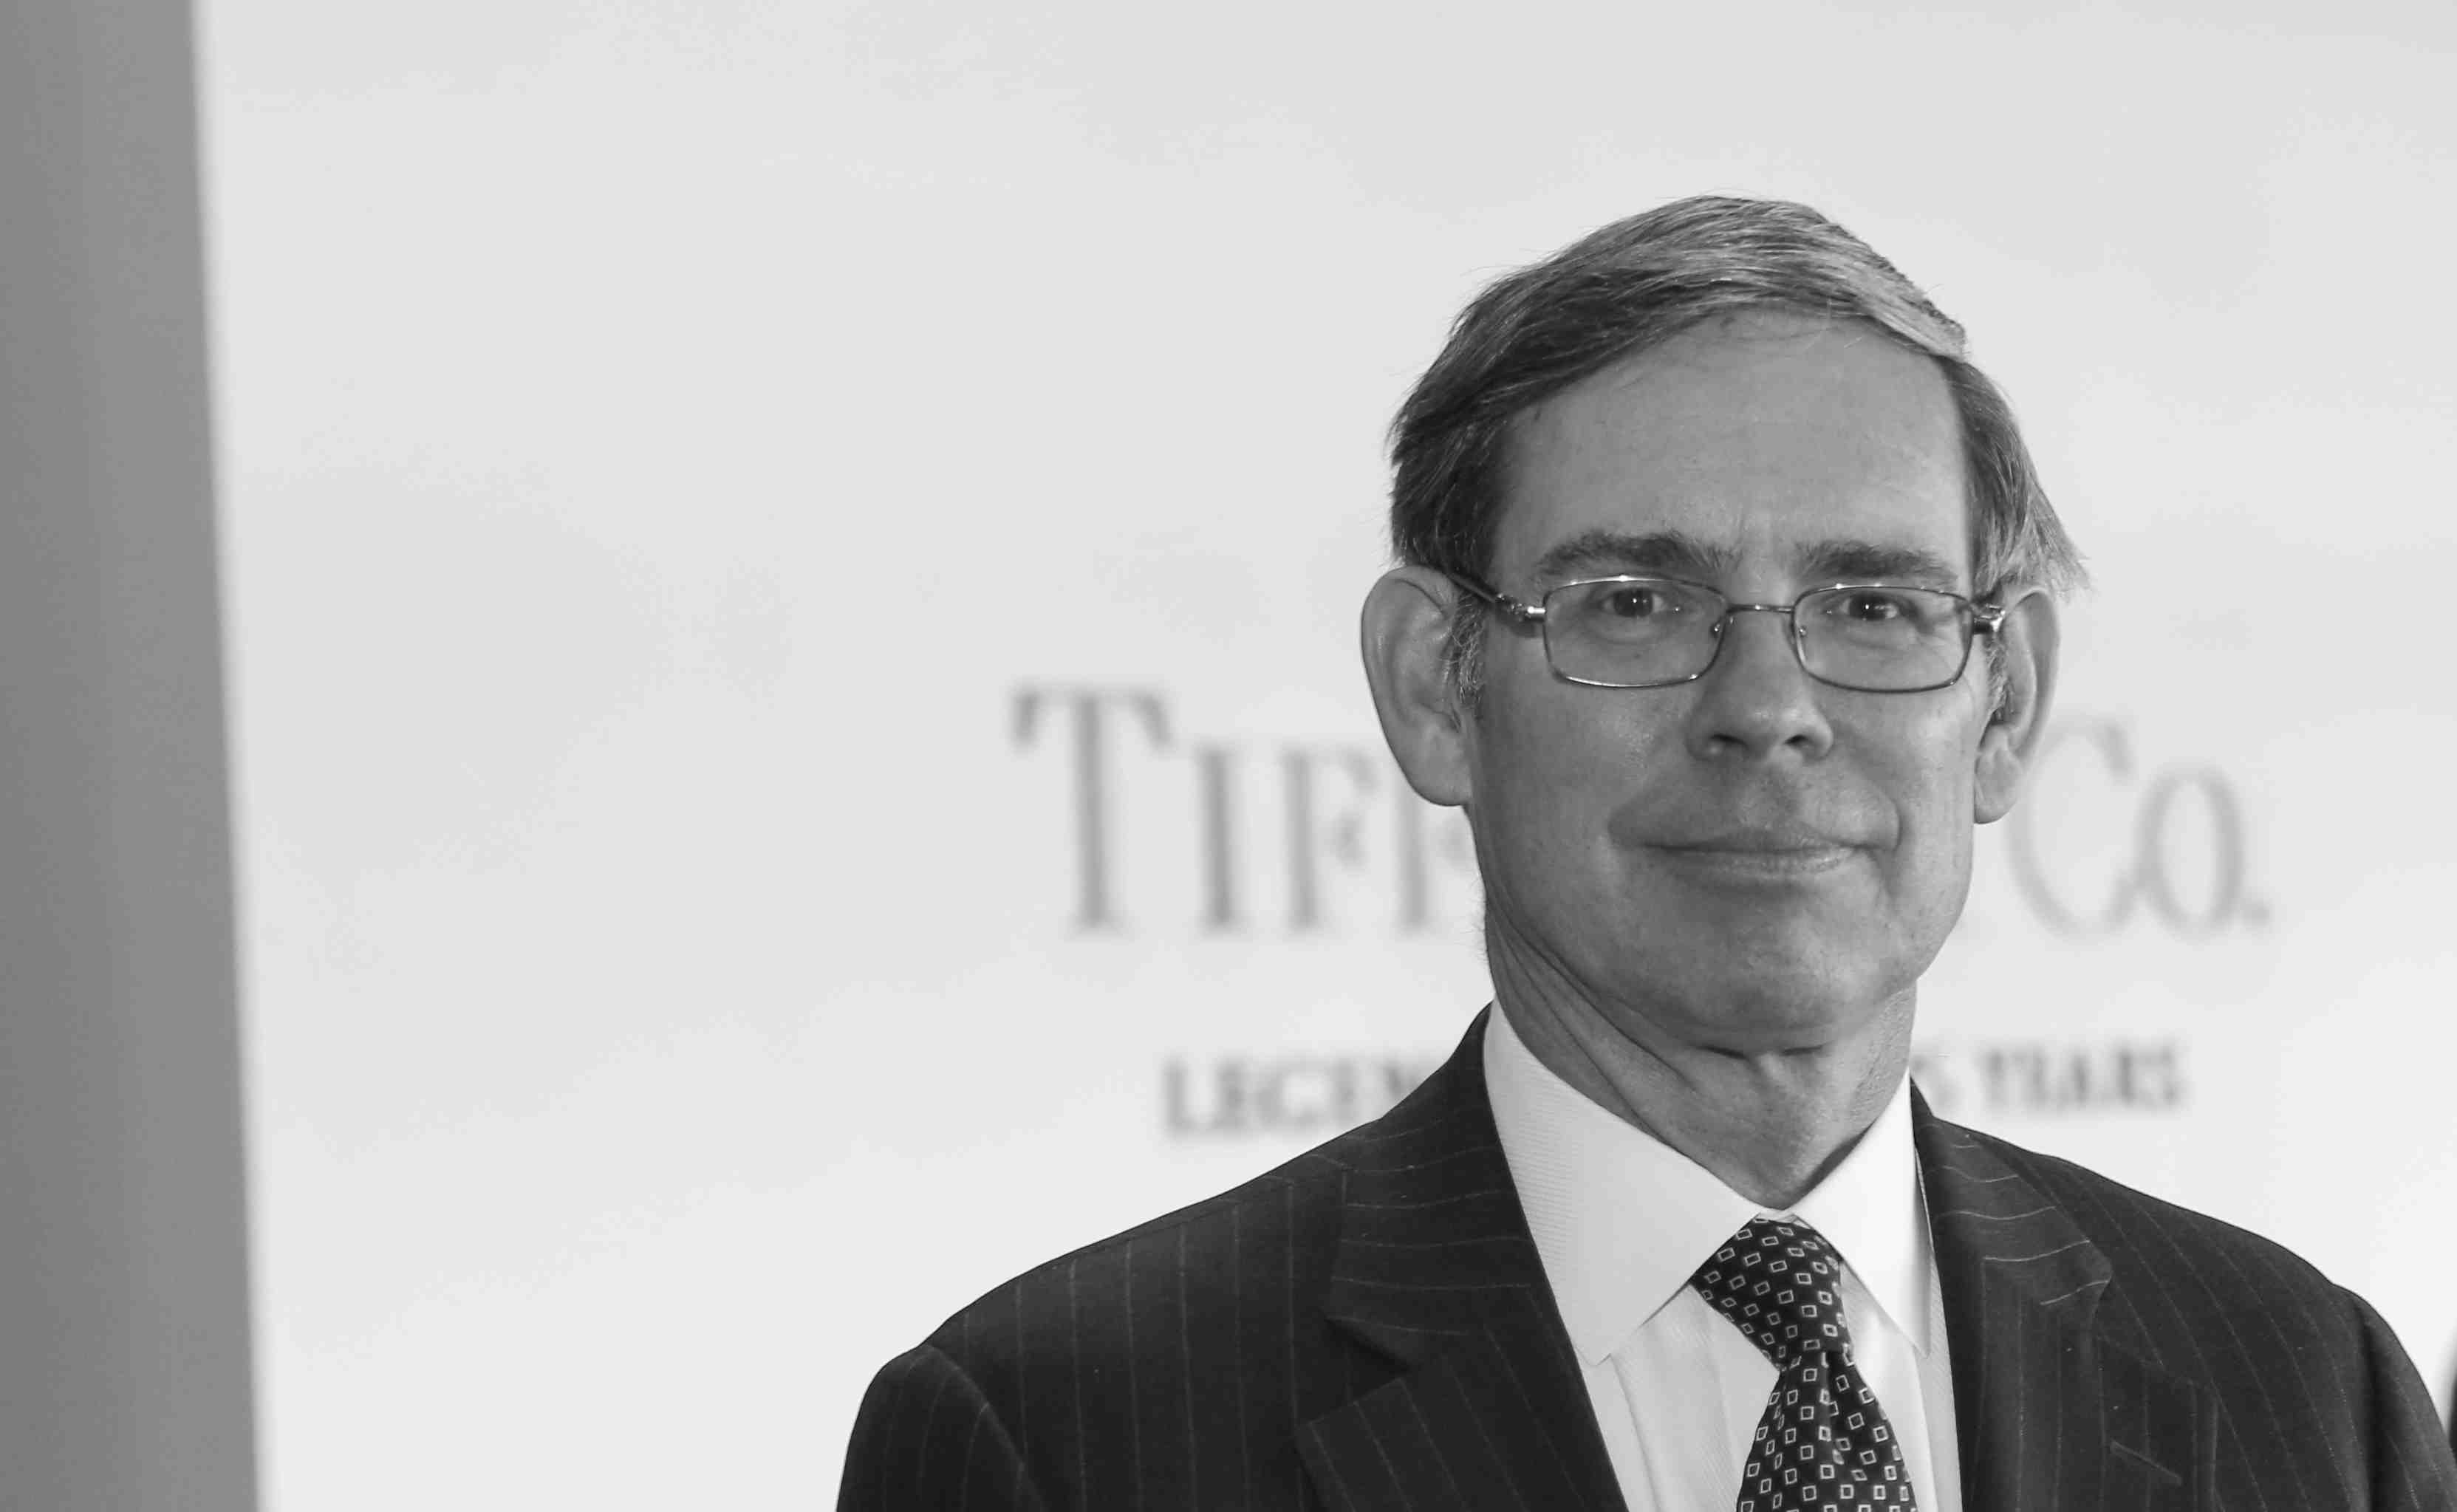 Tough Diamond: Exclusive Interview With Tiffany & Co CEO, Mike Kowalski